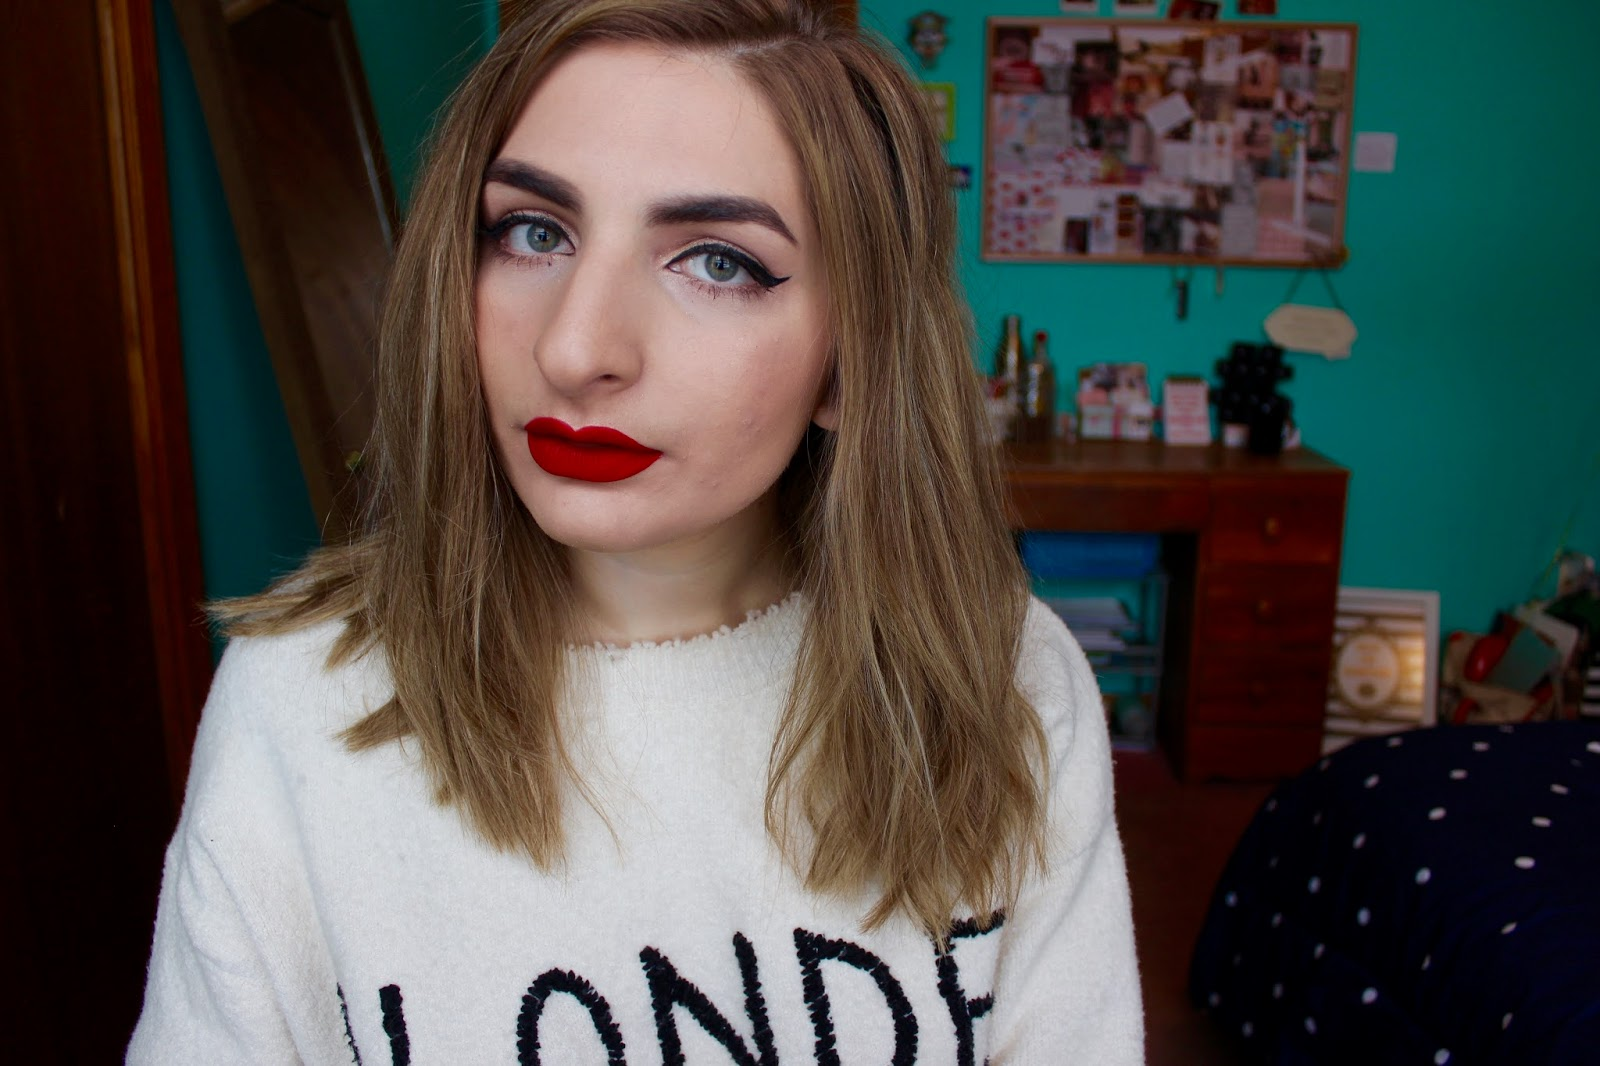 Holiday Makeup Look Gold Eyes And Red Lips Life According To